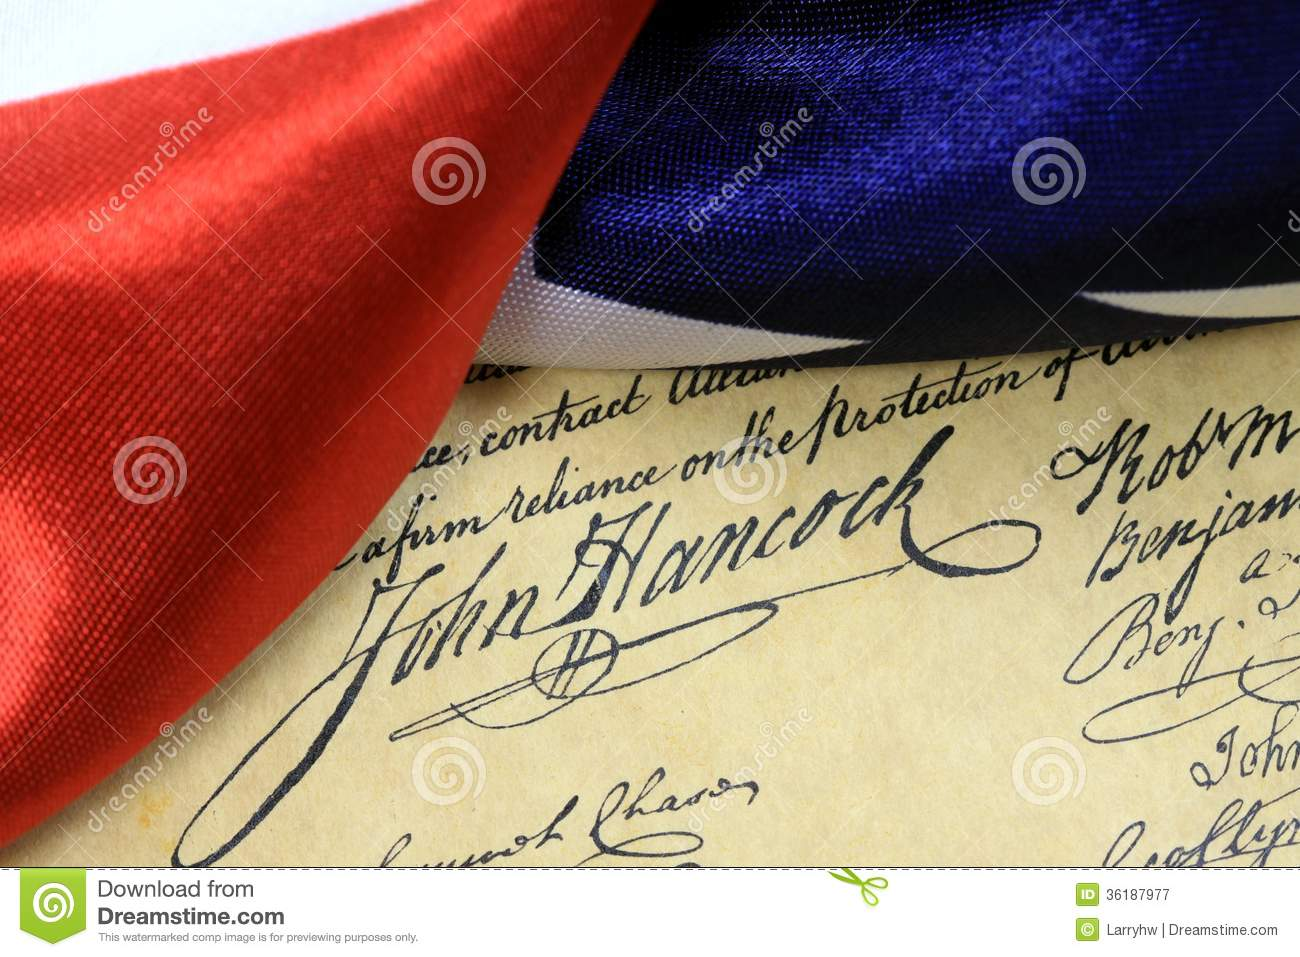 the constitution and the declaration of independence of the united states of america The deist roots of the united states of america the constitution of the united states established the united states of america as a christian nation the declaration of independence mentions god but only in deistic terms.